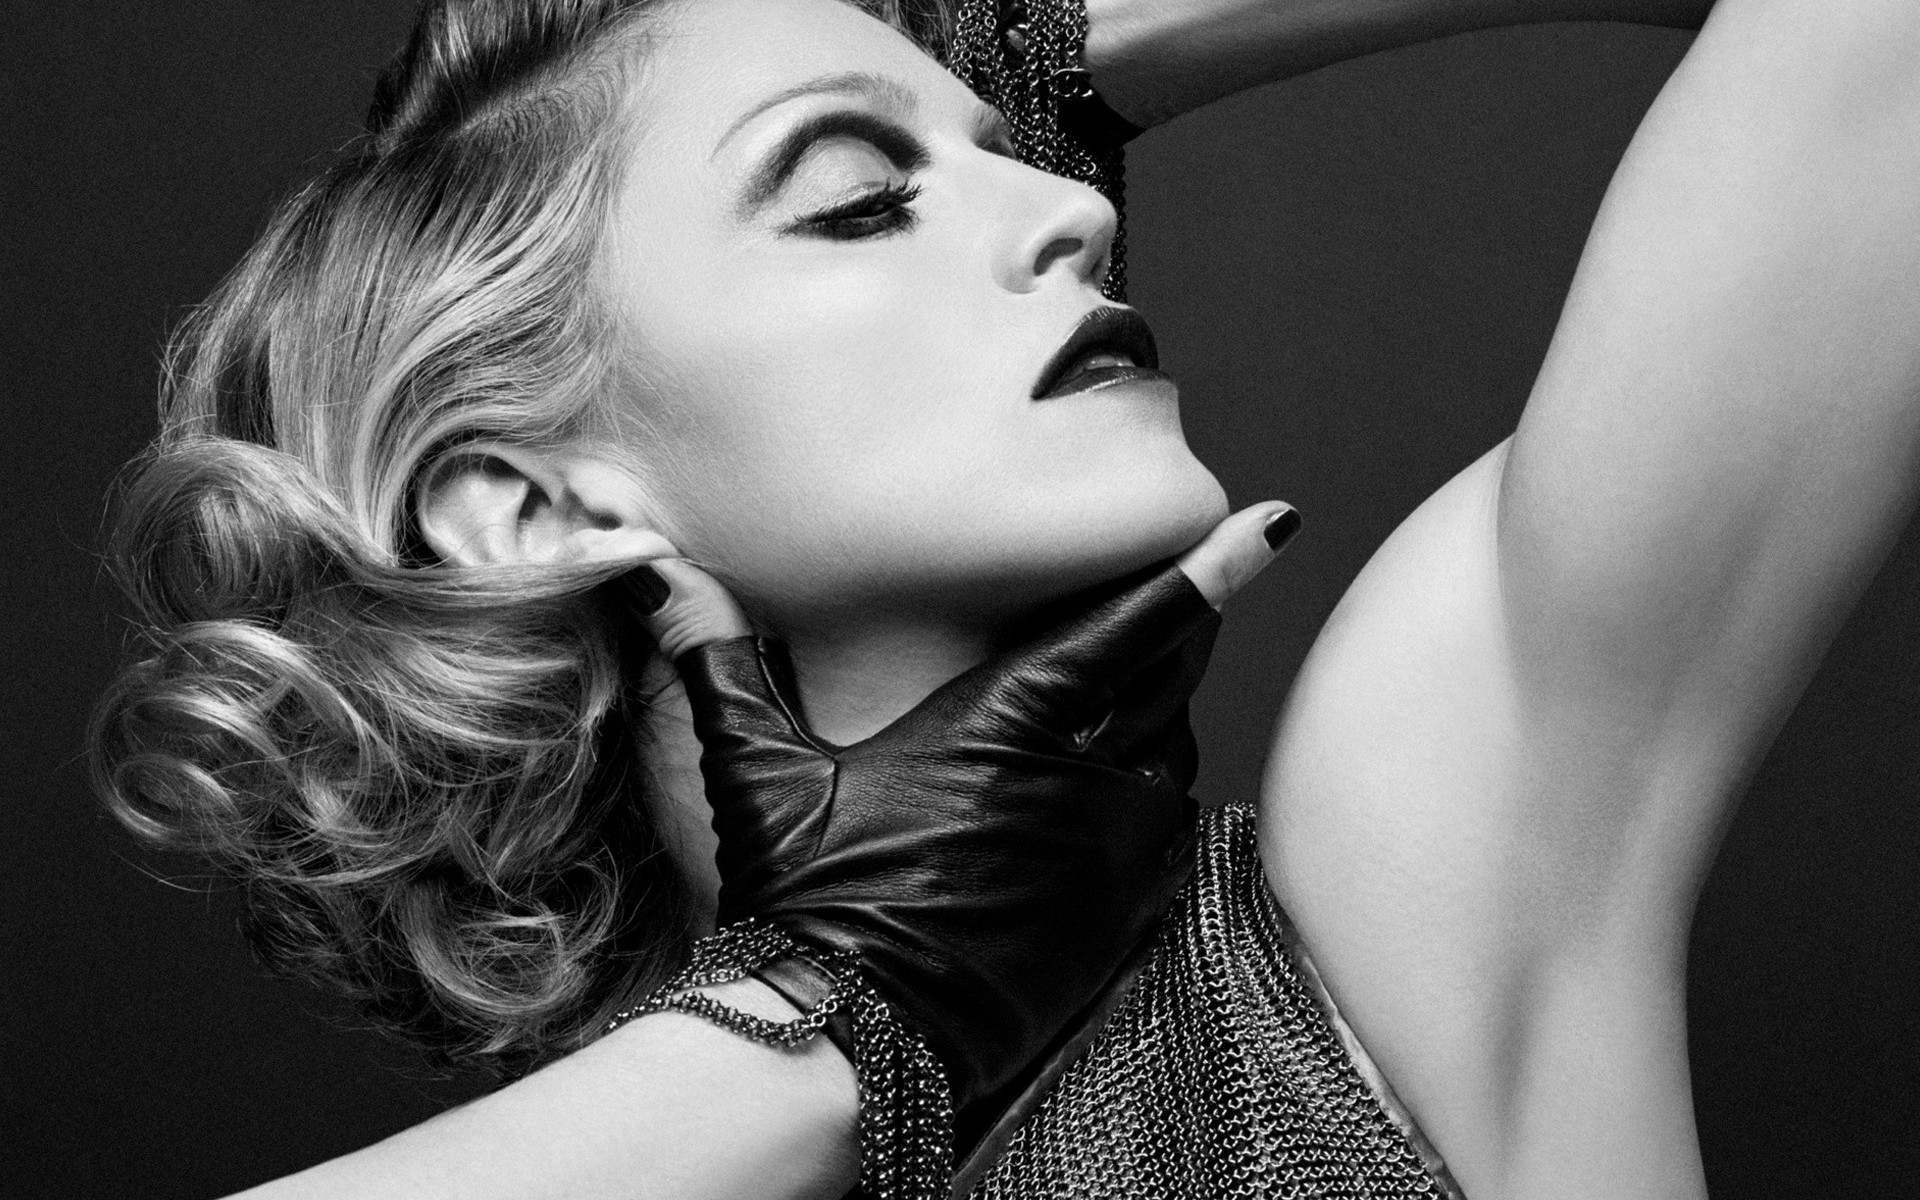 Iphone Wallpaper Book Quotes Madonna Hd Wallpapers For Desktop Download